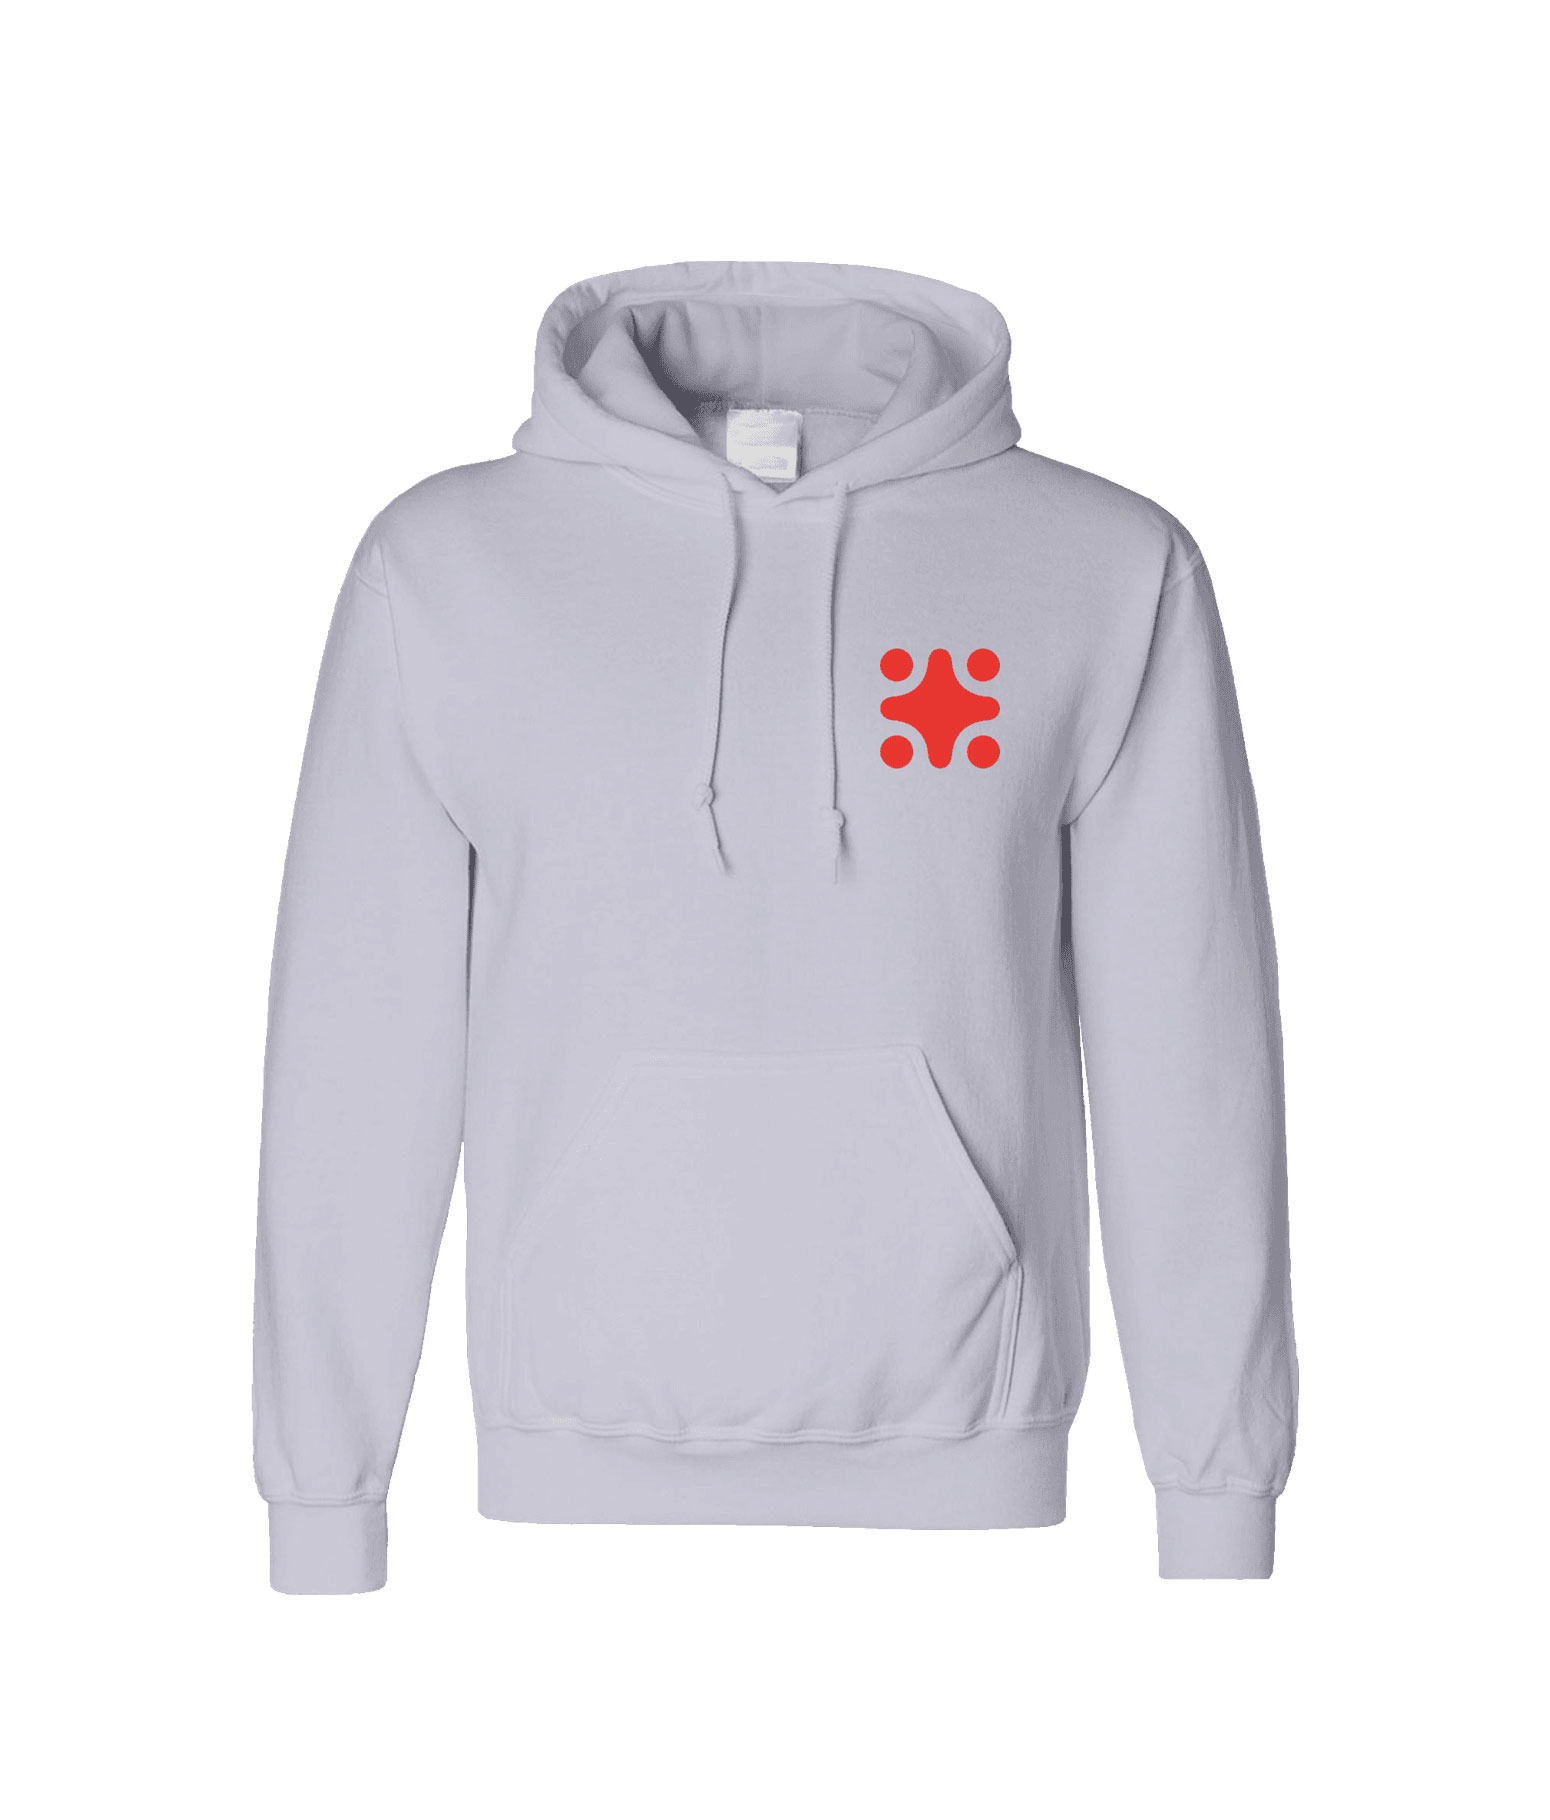 product-white-hoody